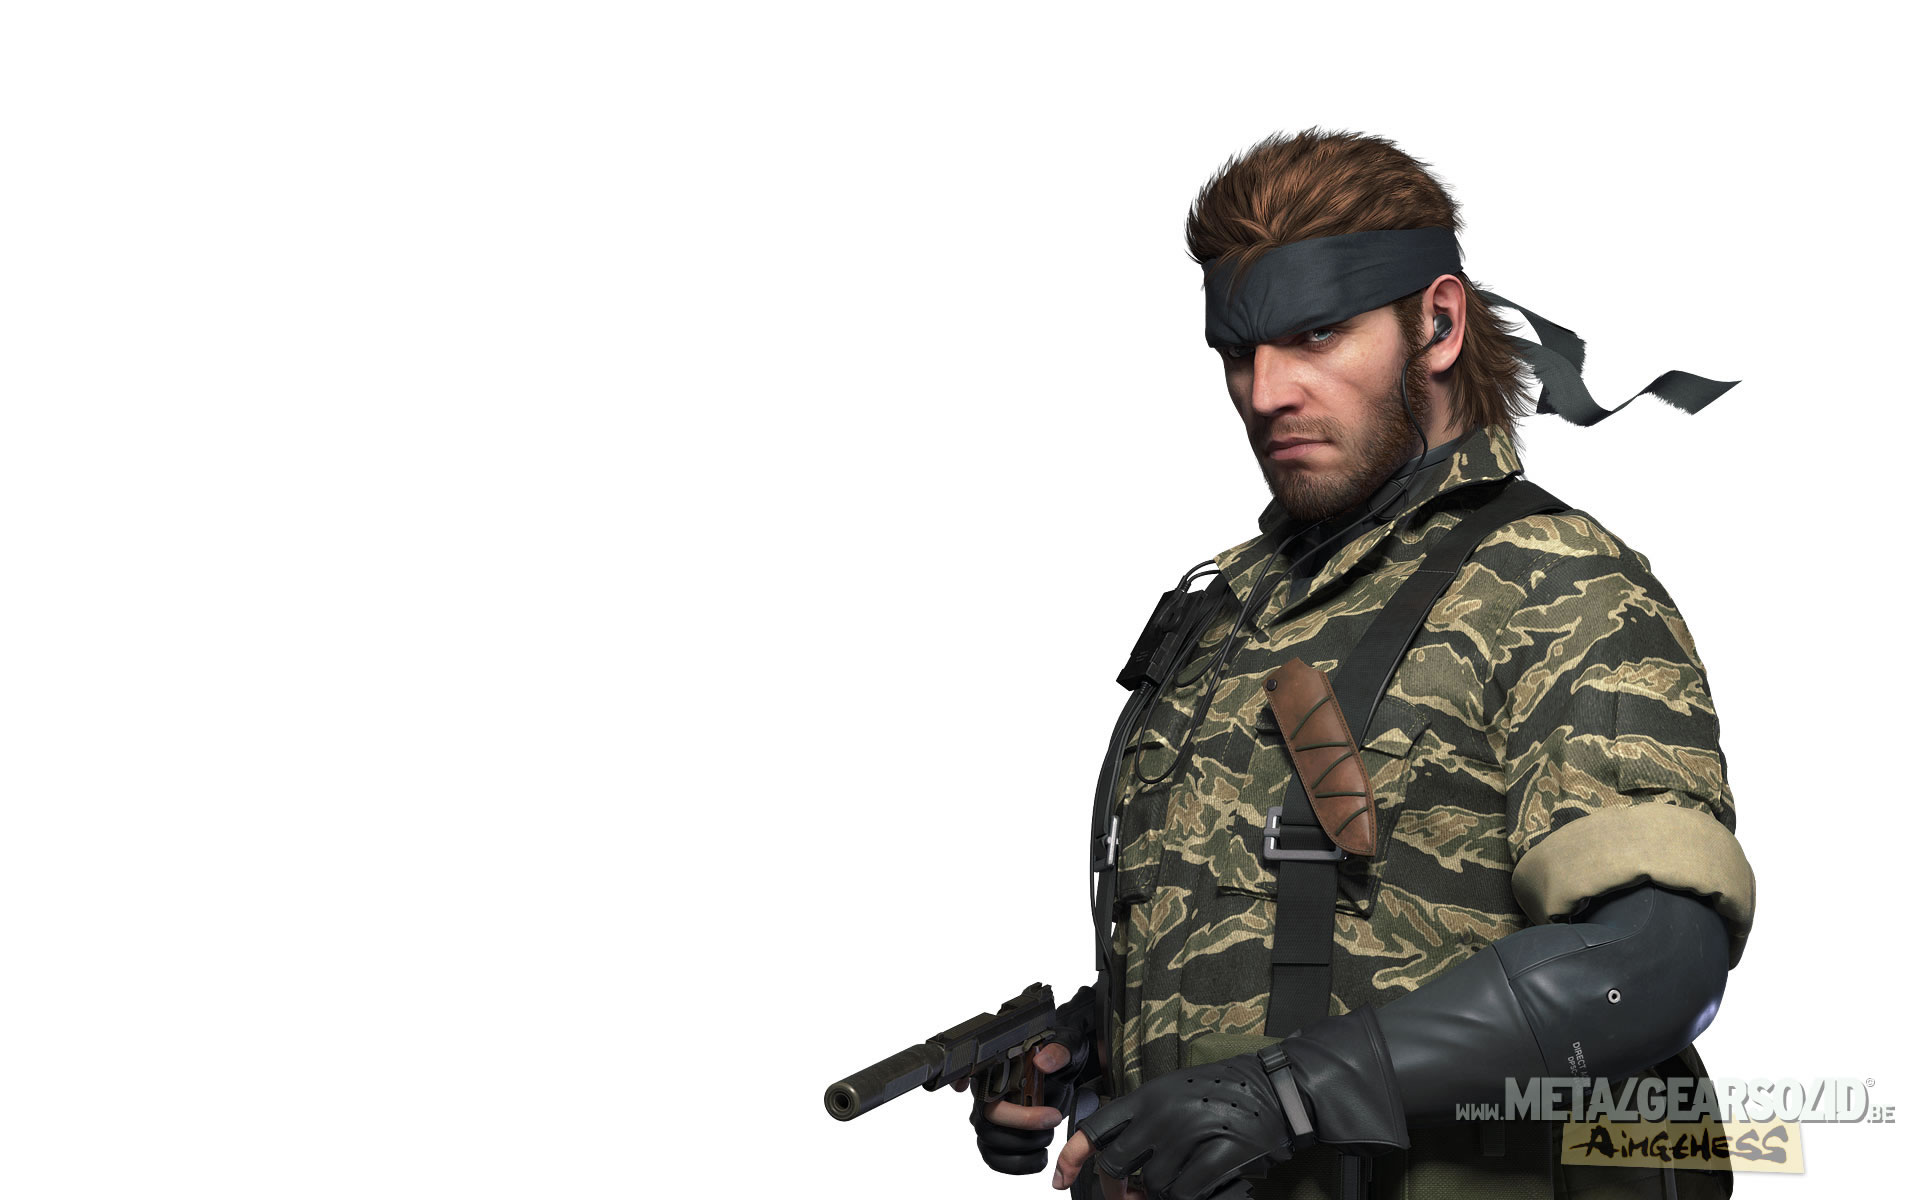 Metal Gear Solid 3: Snake Eater / Персонажи - Metal Gear Solid 3: Snake Eater big boss, eva, арт, Персонаж